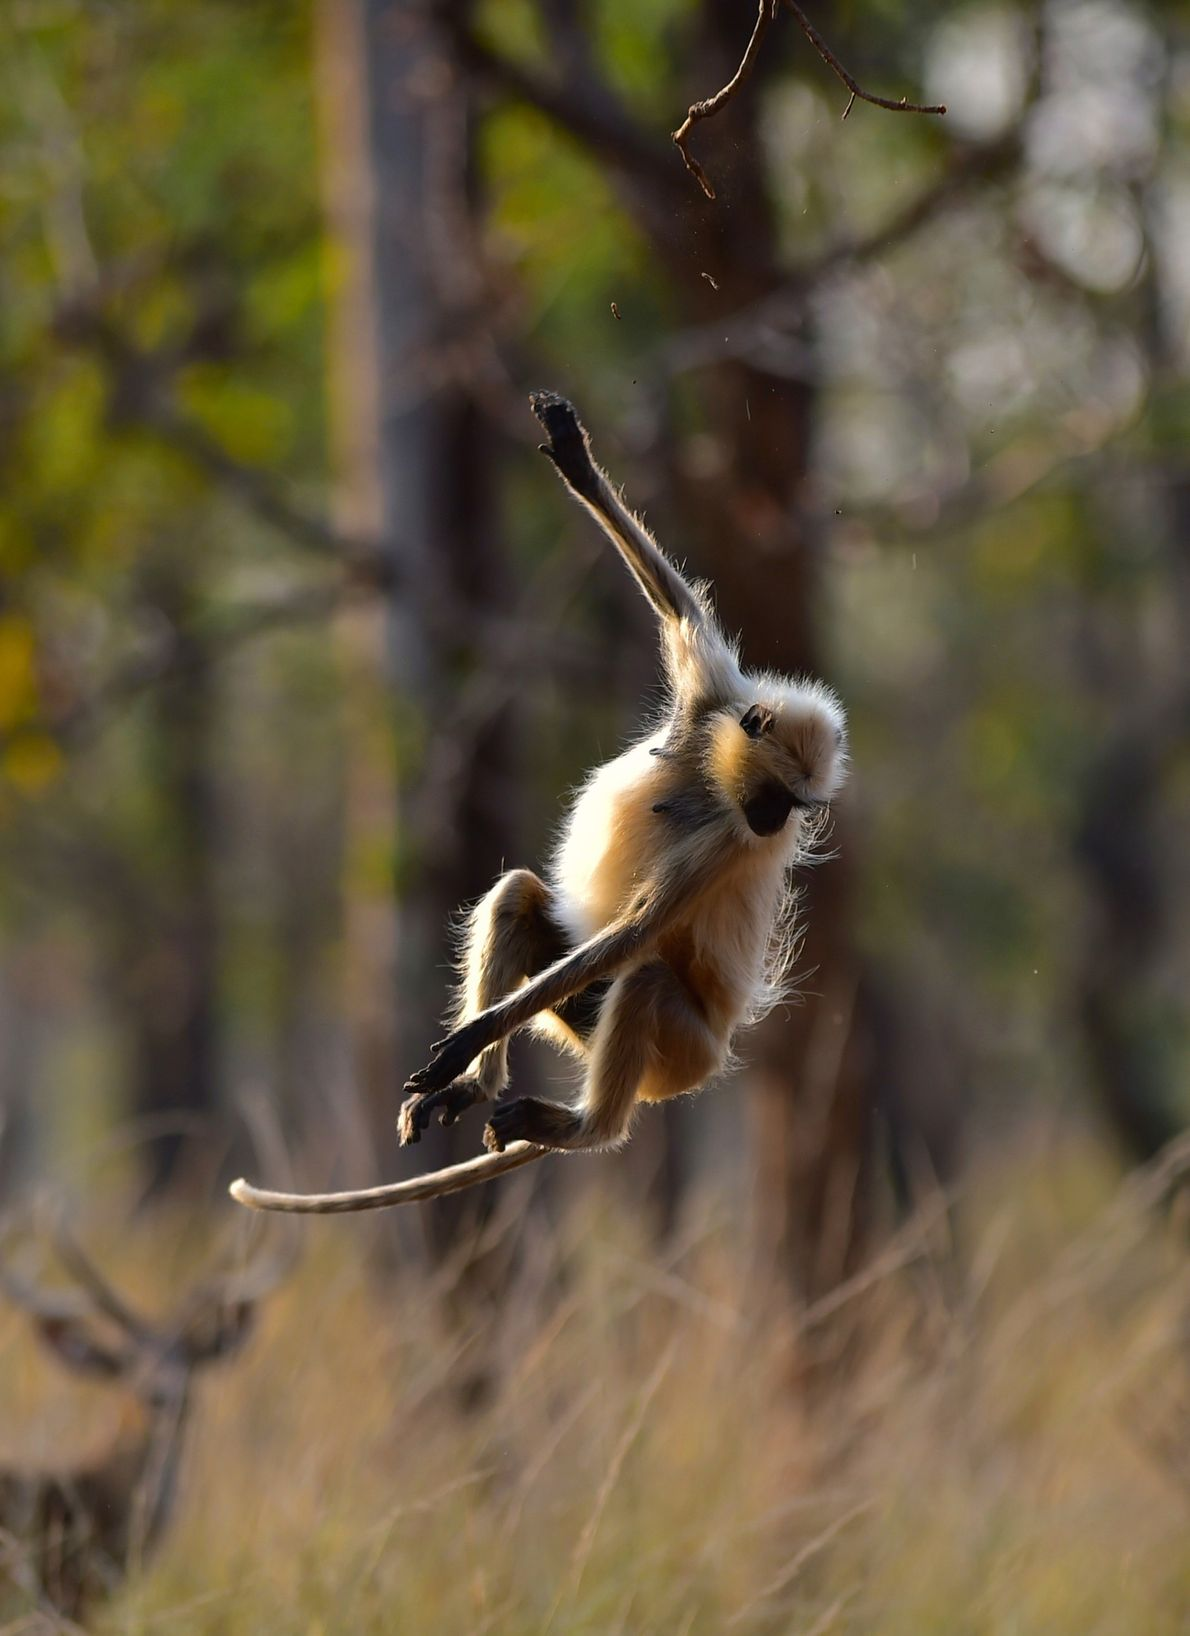 A langur jumps from a branch of a tree in Madhya Pradesh, India.